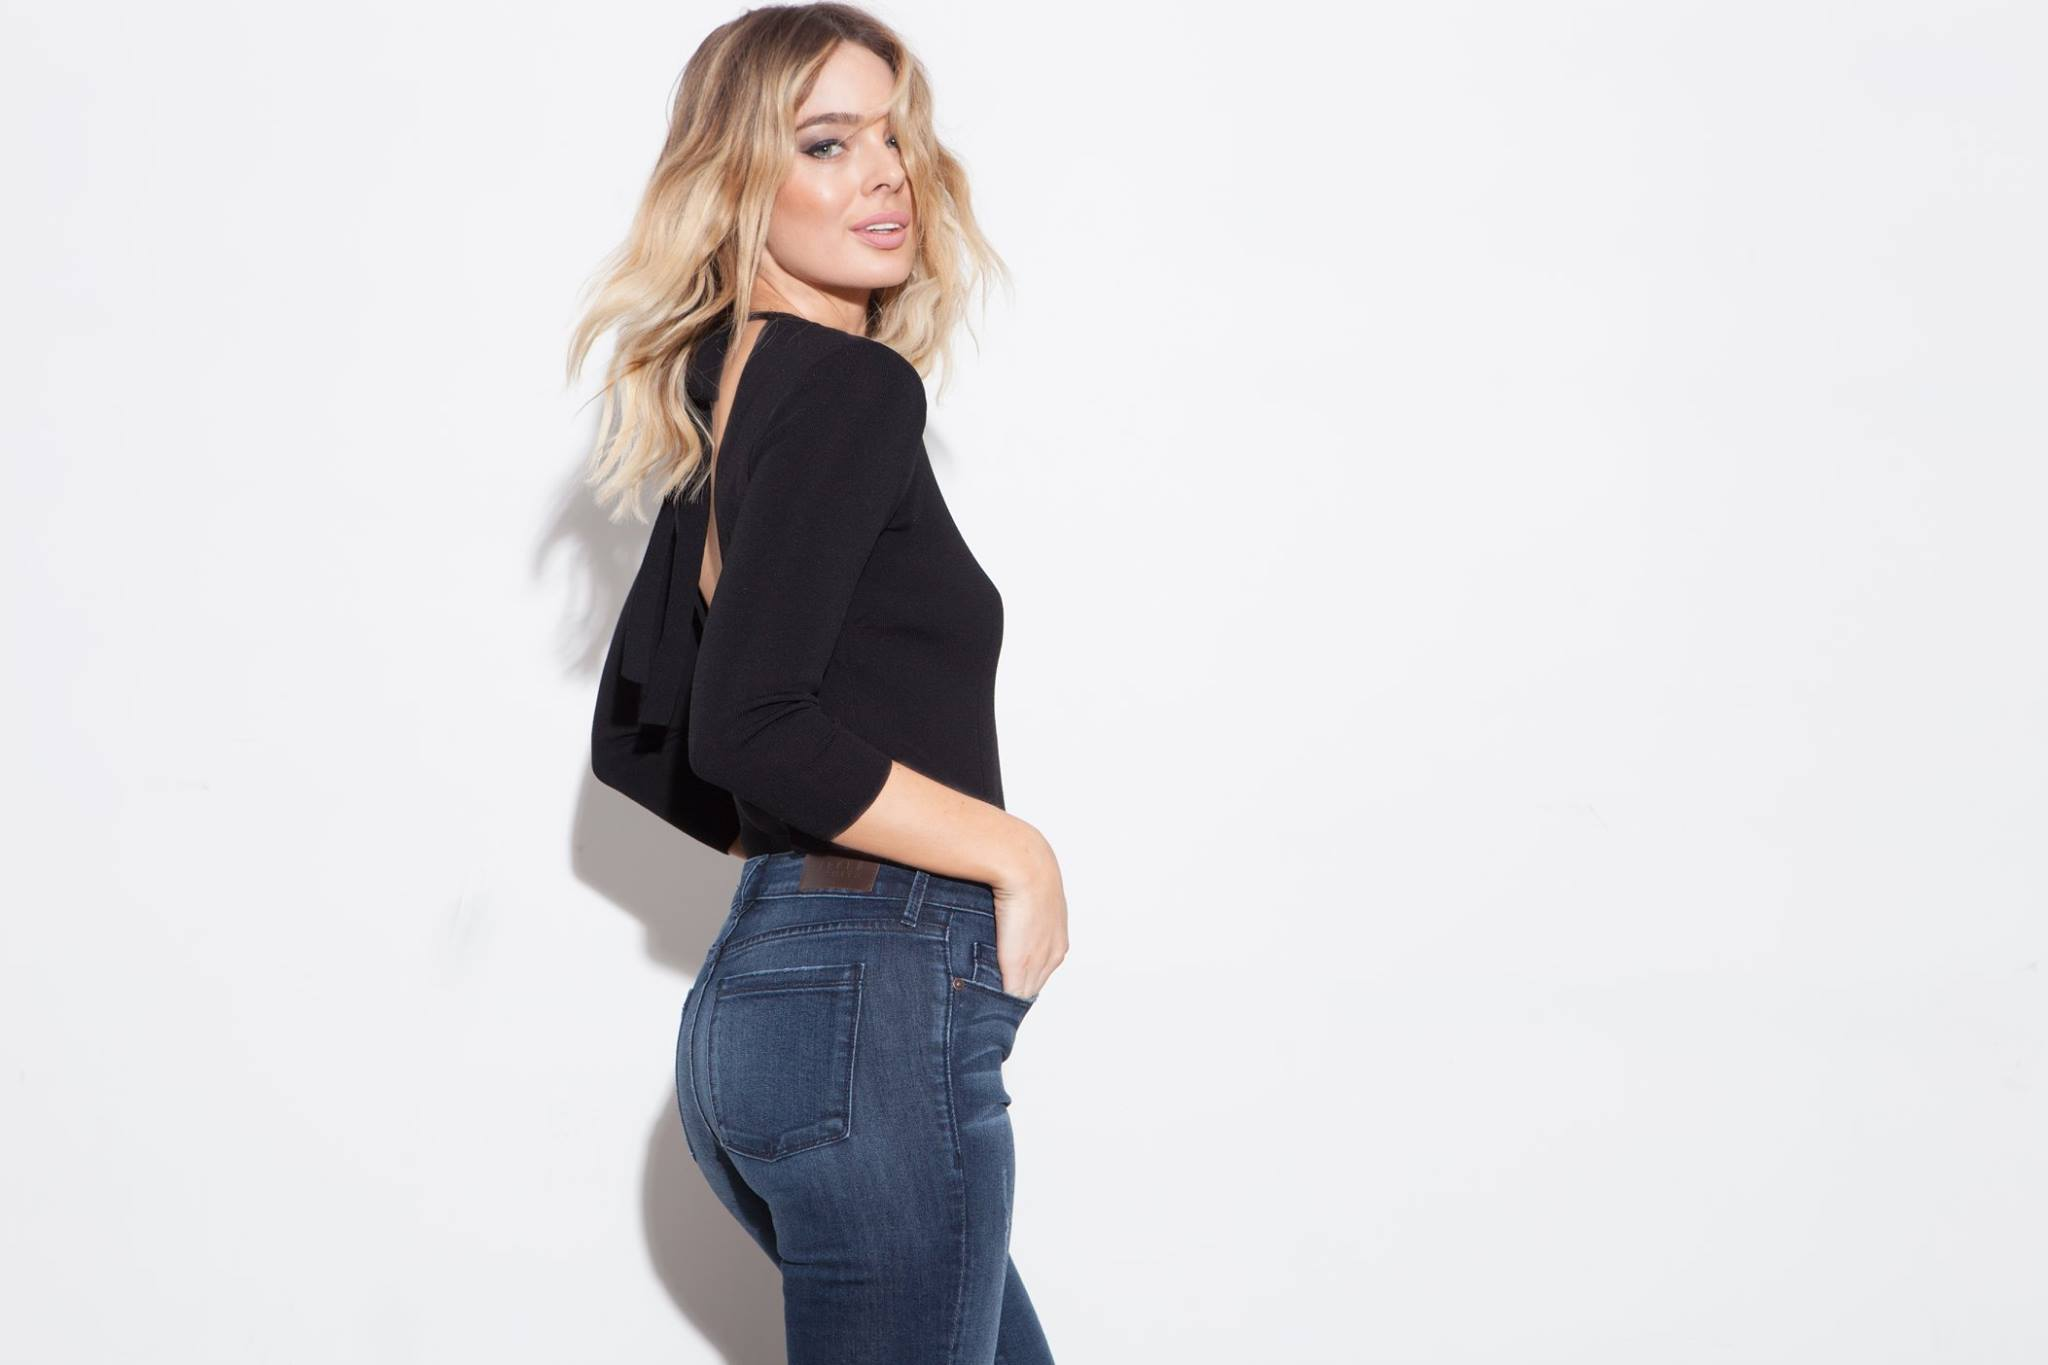 A woman wearing a black shirt and Parker Smith jeans